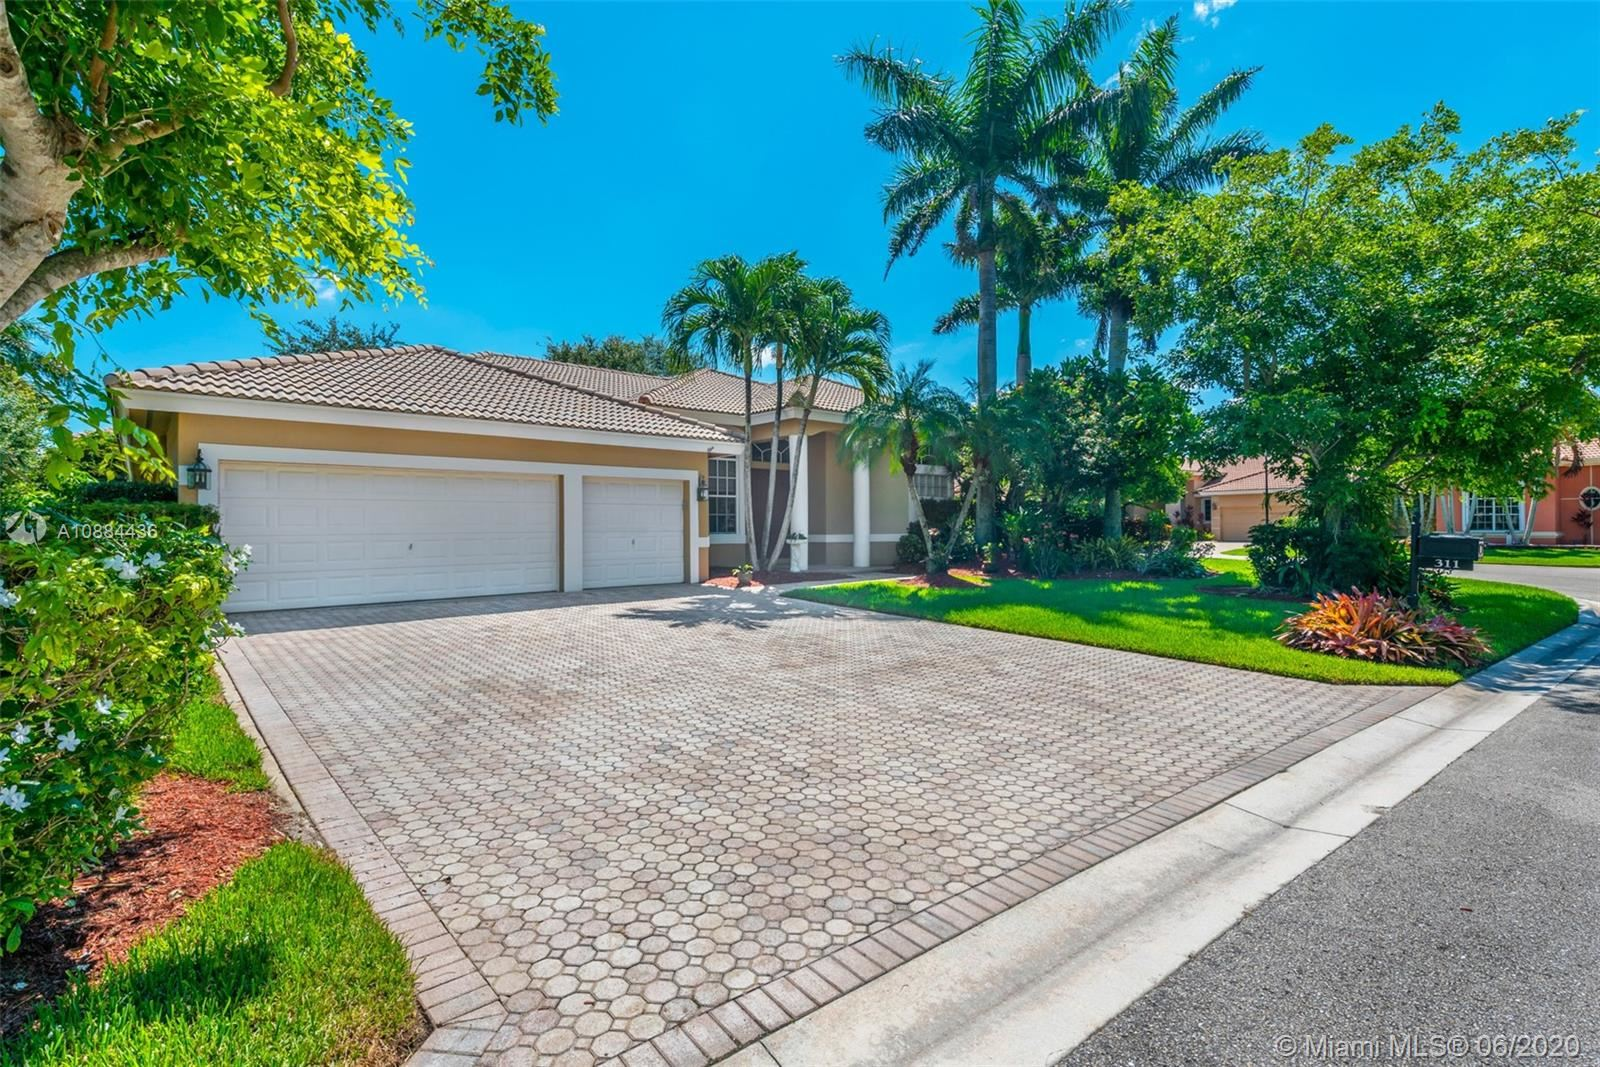 311 NW 120th Ter, Coral Springs, FL 33071 - #: A10884436